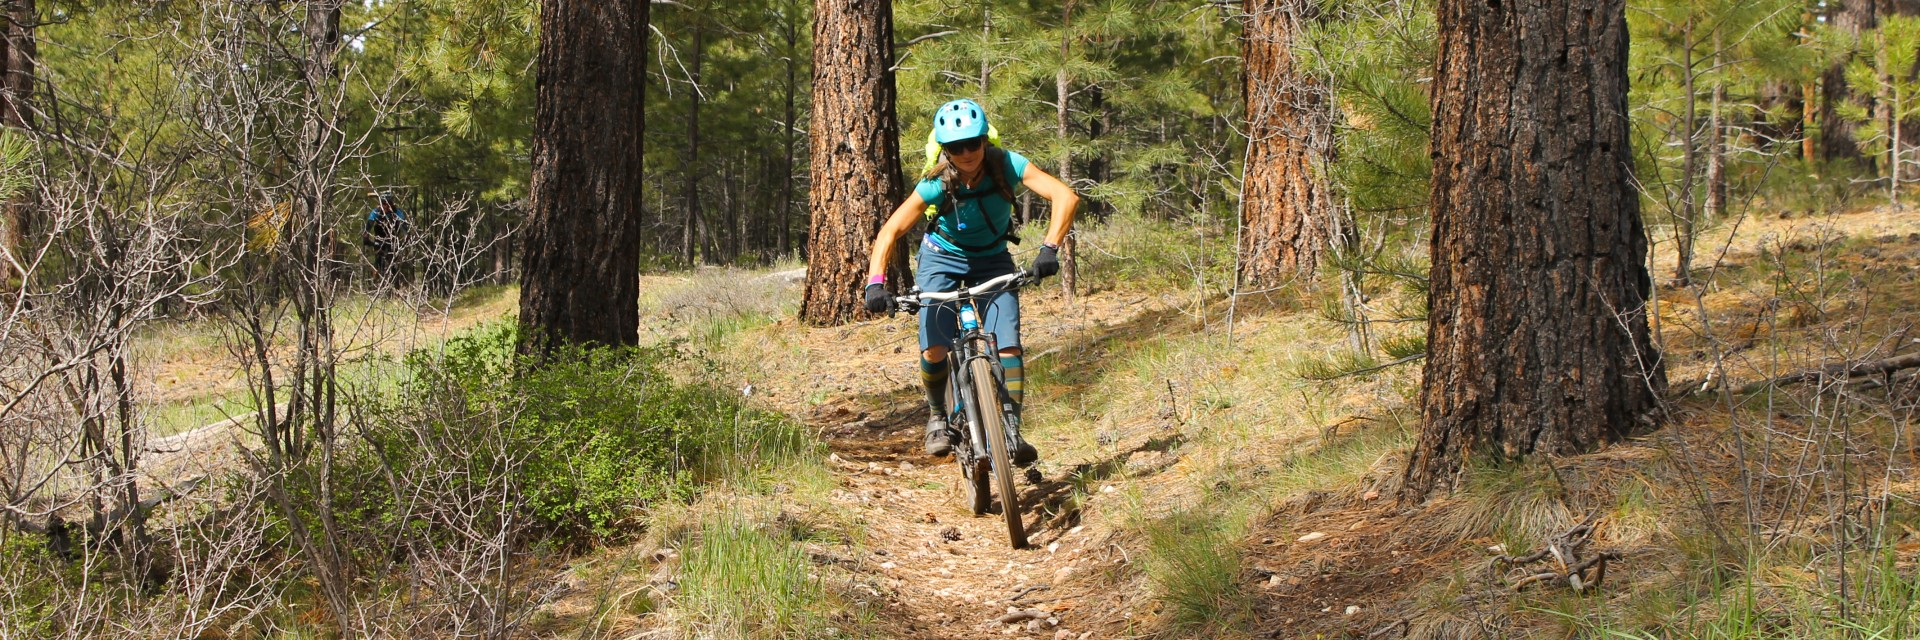 Much of the guided mountain bike tour along the Rainbow Rim Trail on the North Rim of the Grand Canyon is through ponderosa pine forests